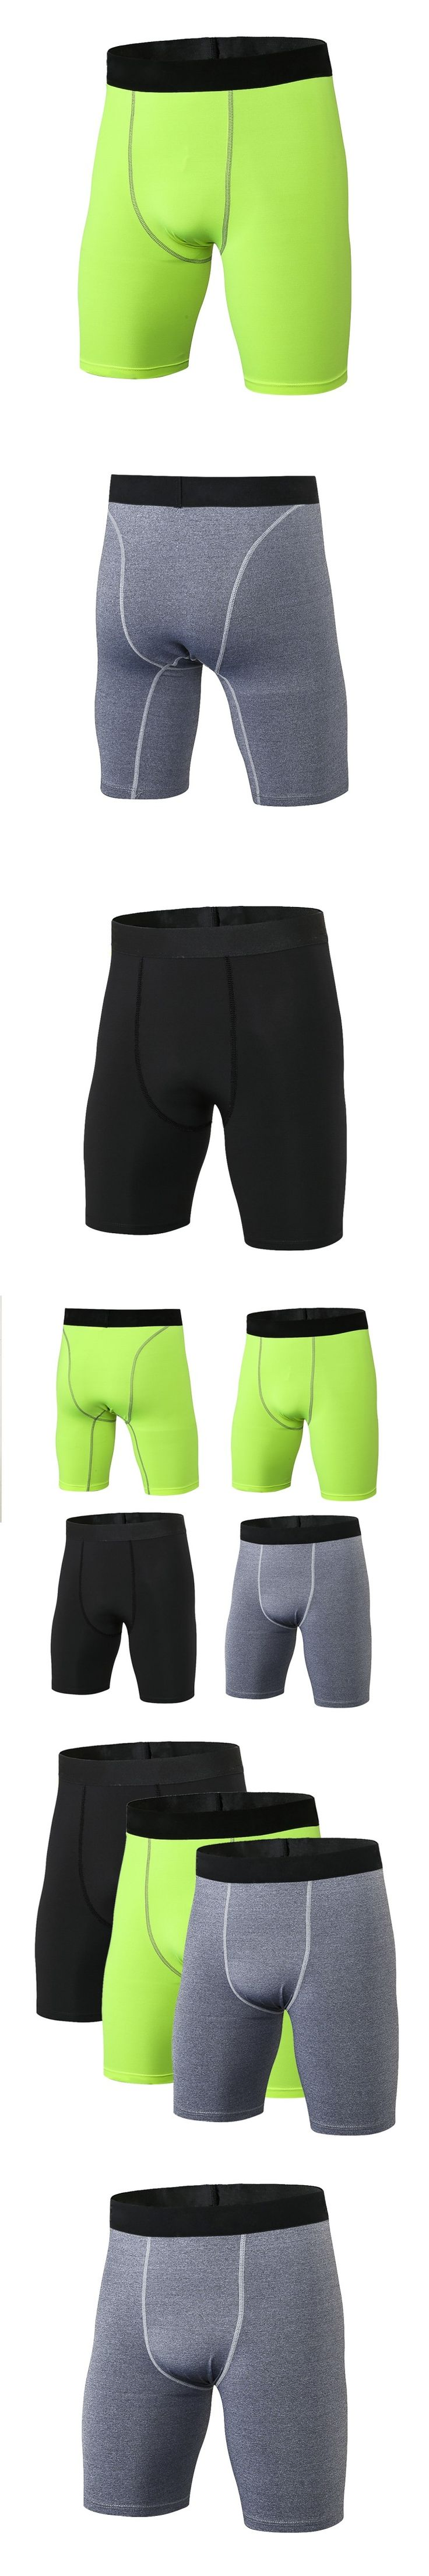 Leisure Men Quick Dry Compression Shorts Casual Men Bodybuilding Wear Base Layer Tights Trousers